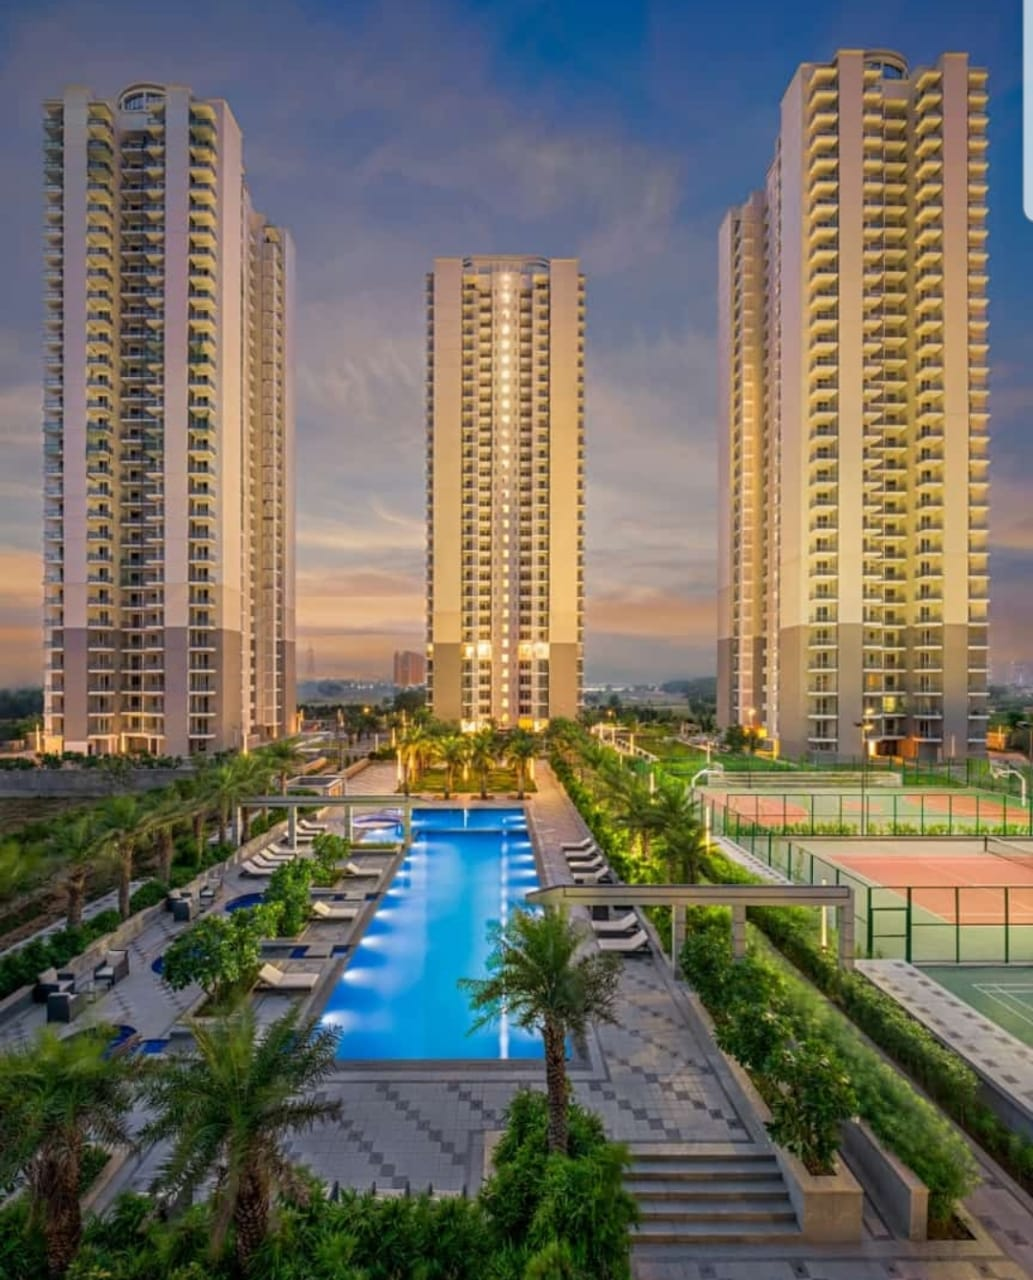 Dlf The Ultima - Offers 3 BHK Apartments Gurgaon